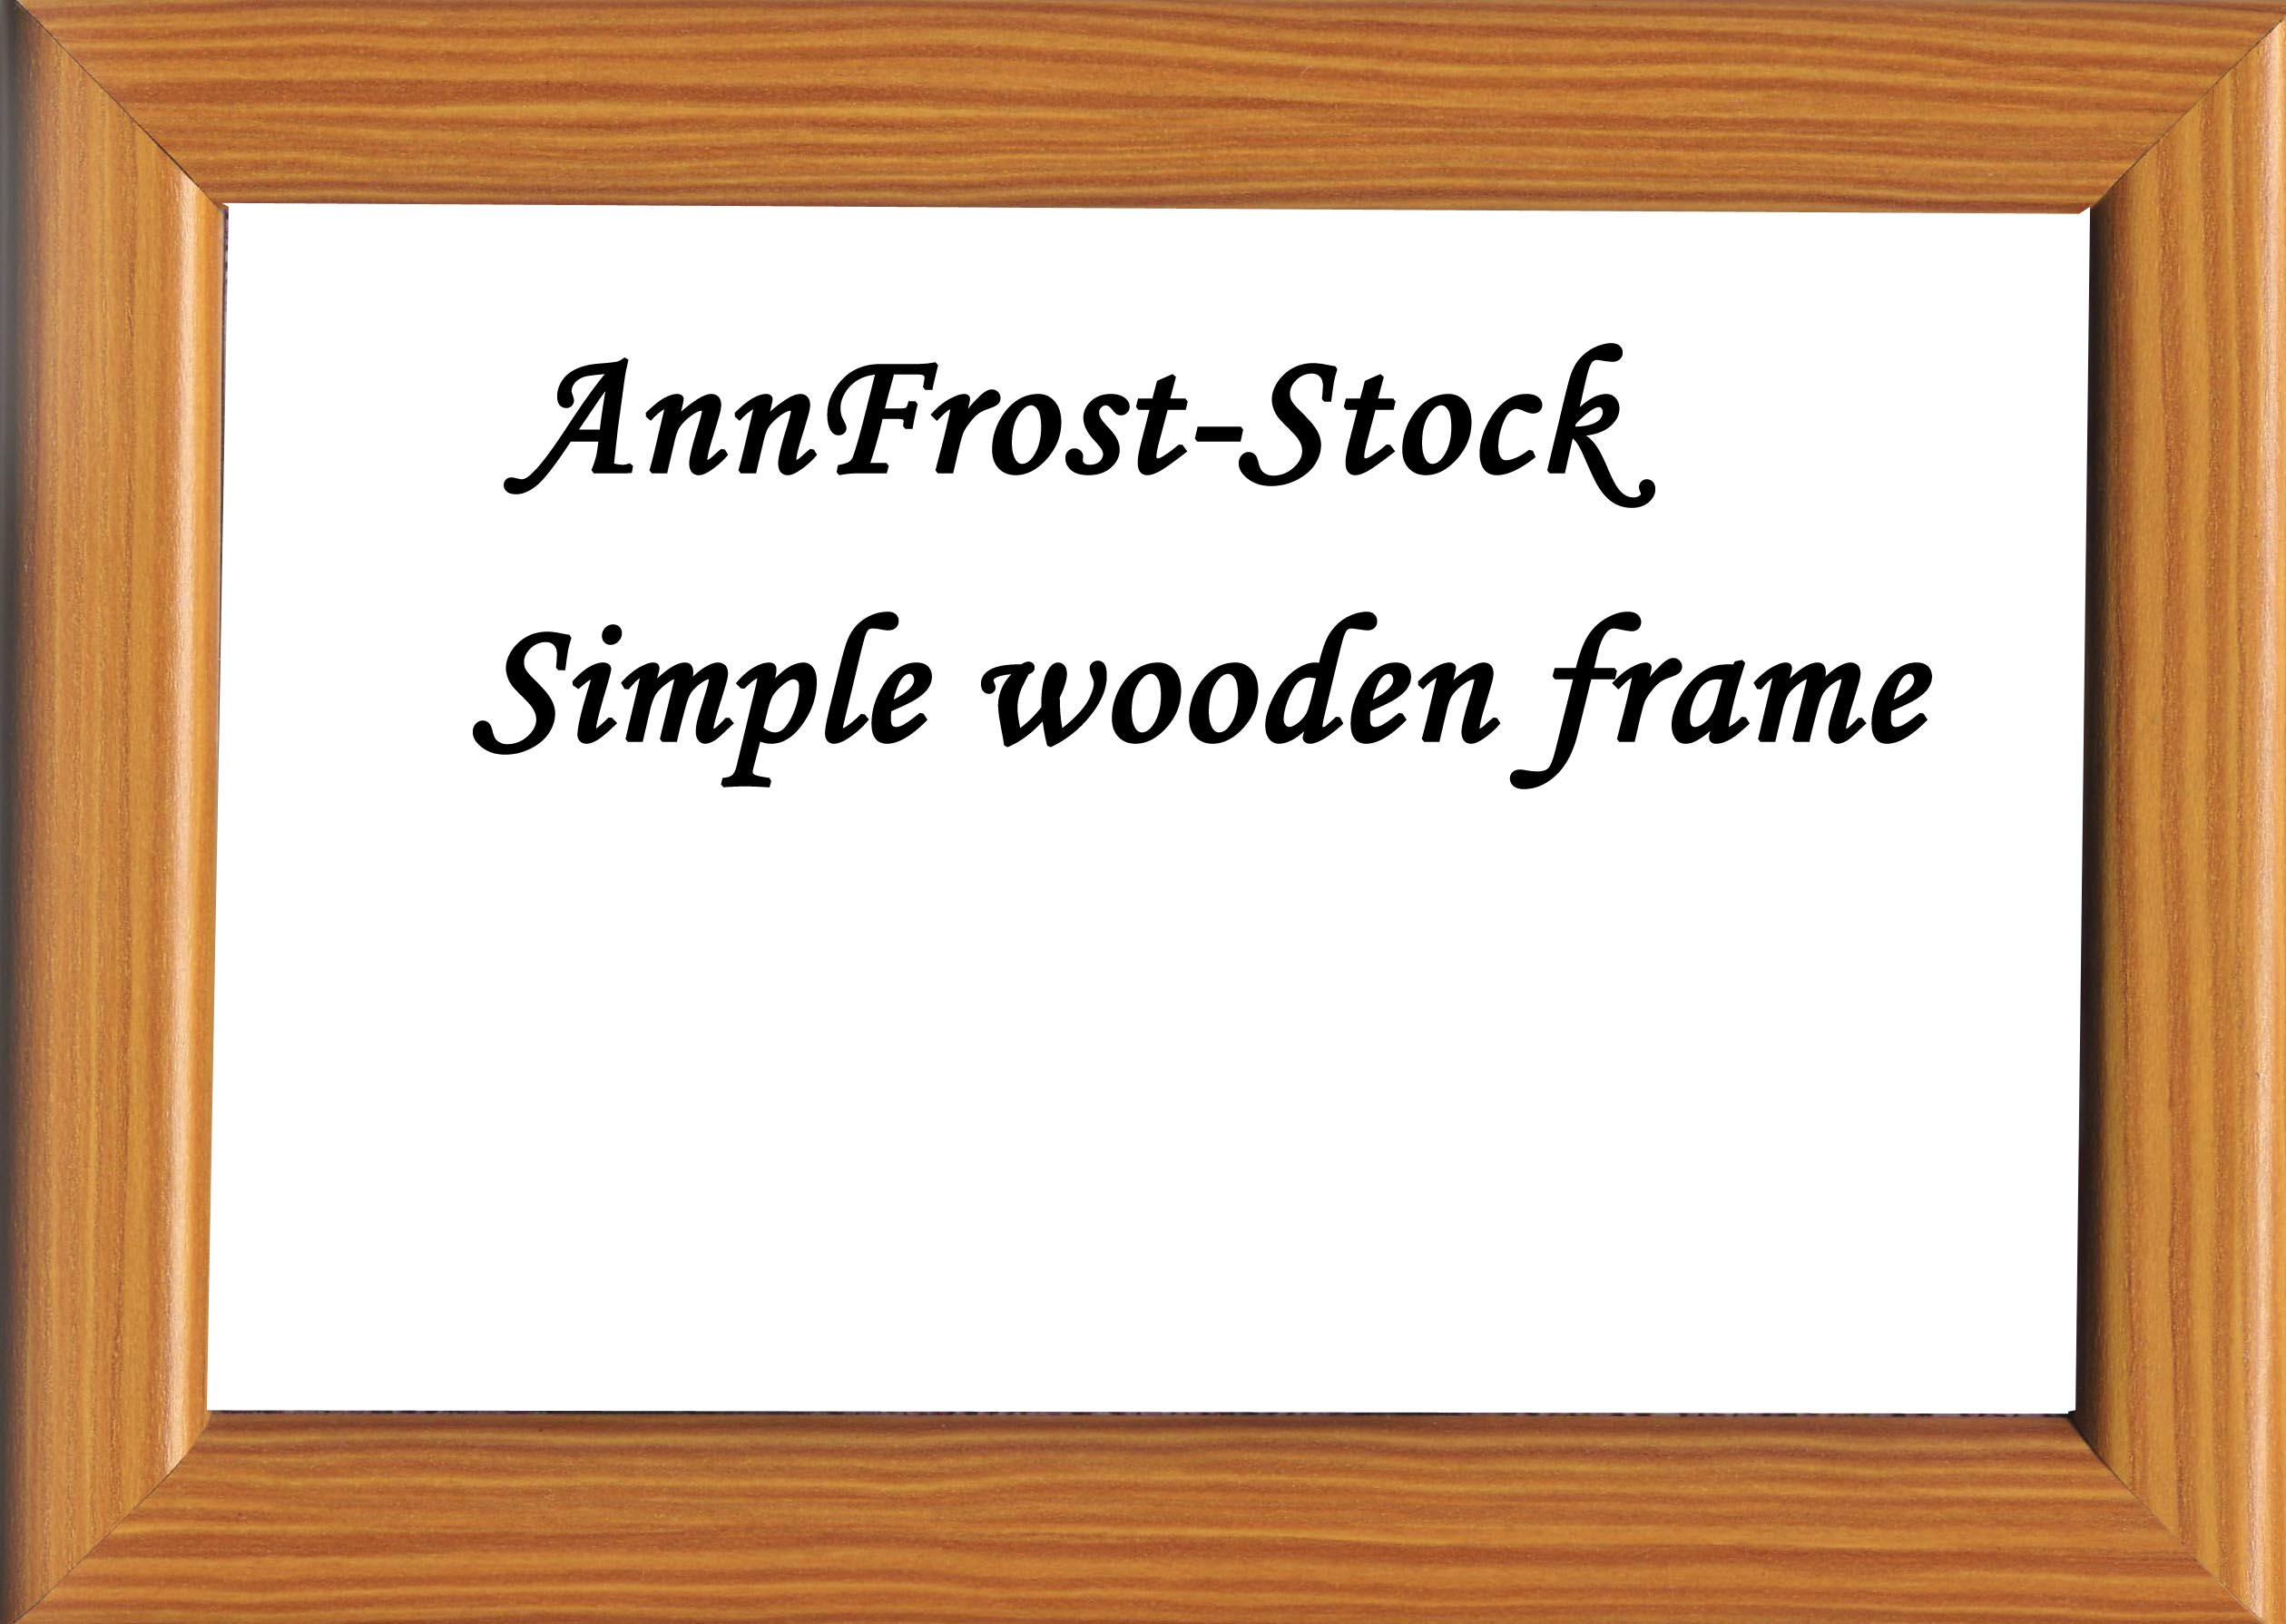 Simple wooden frame by AnnFrost-stock on DeviantArt